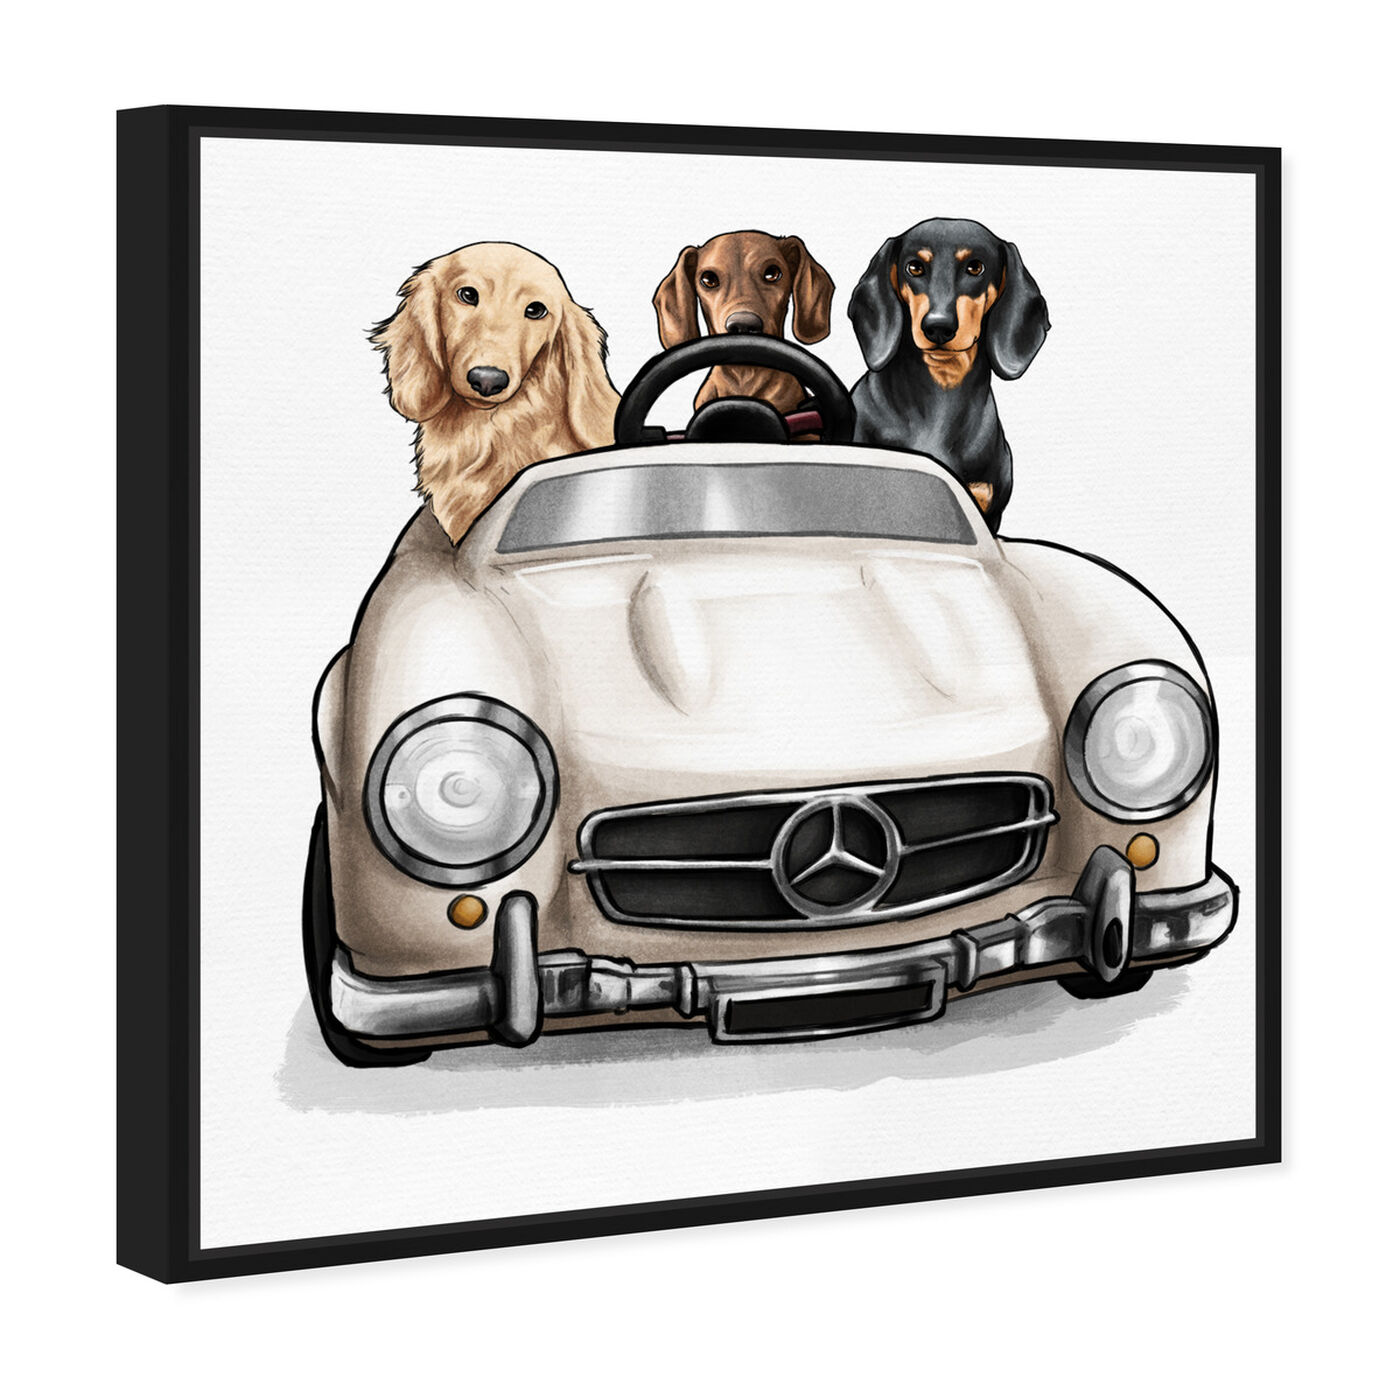 Angled view of Strolling in Style dachshunds featuring animals and dogs and puppies art.